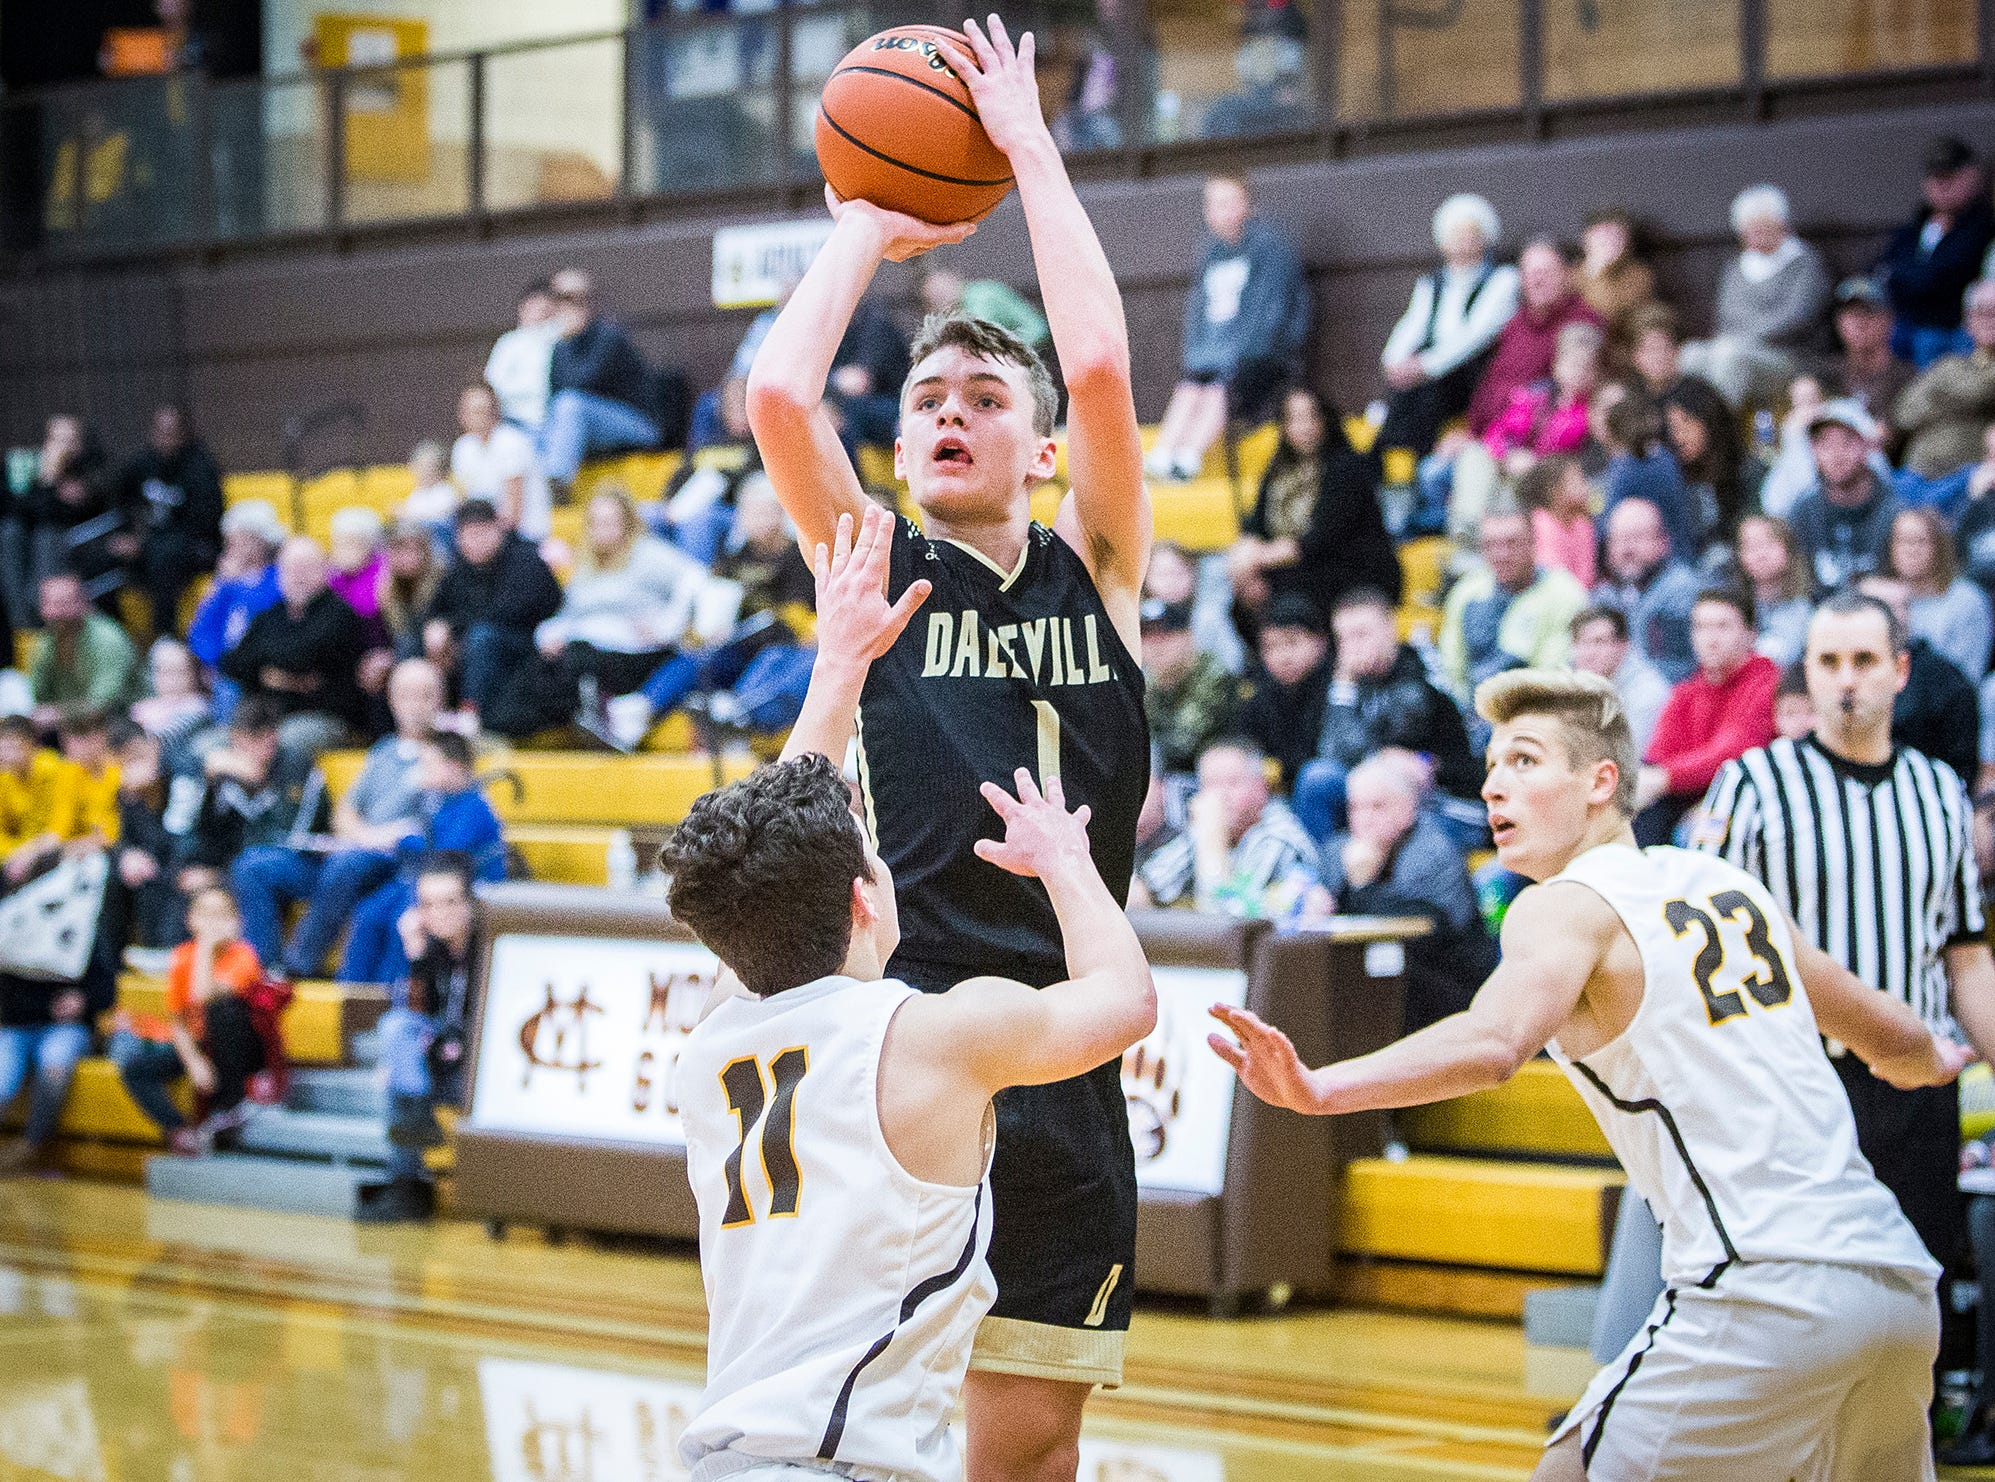 Daleville's Tim Arnold shoots past Monroe Central's defense during their game at Monroe Central High School Friday, Nov. 30, 2018.